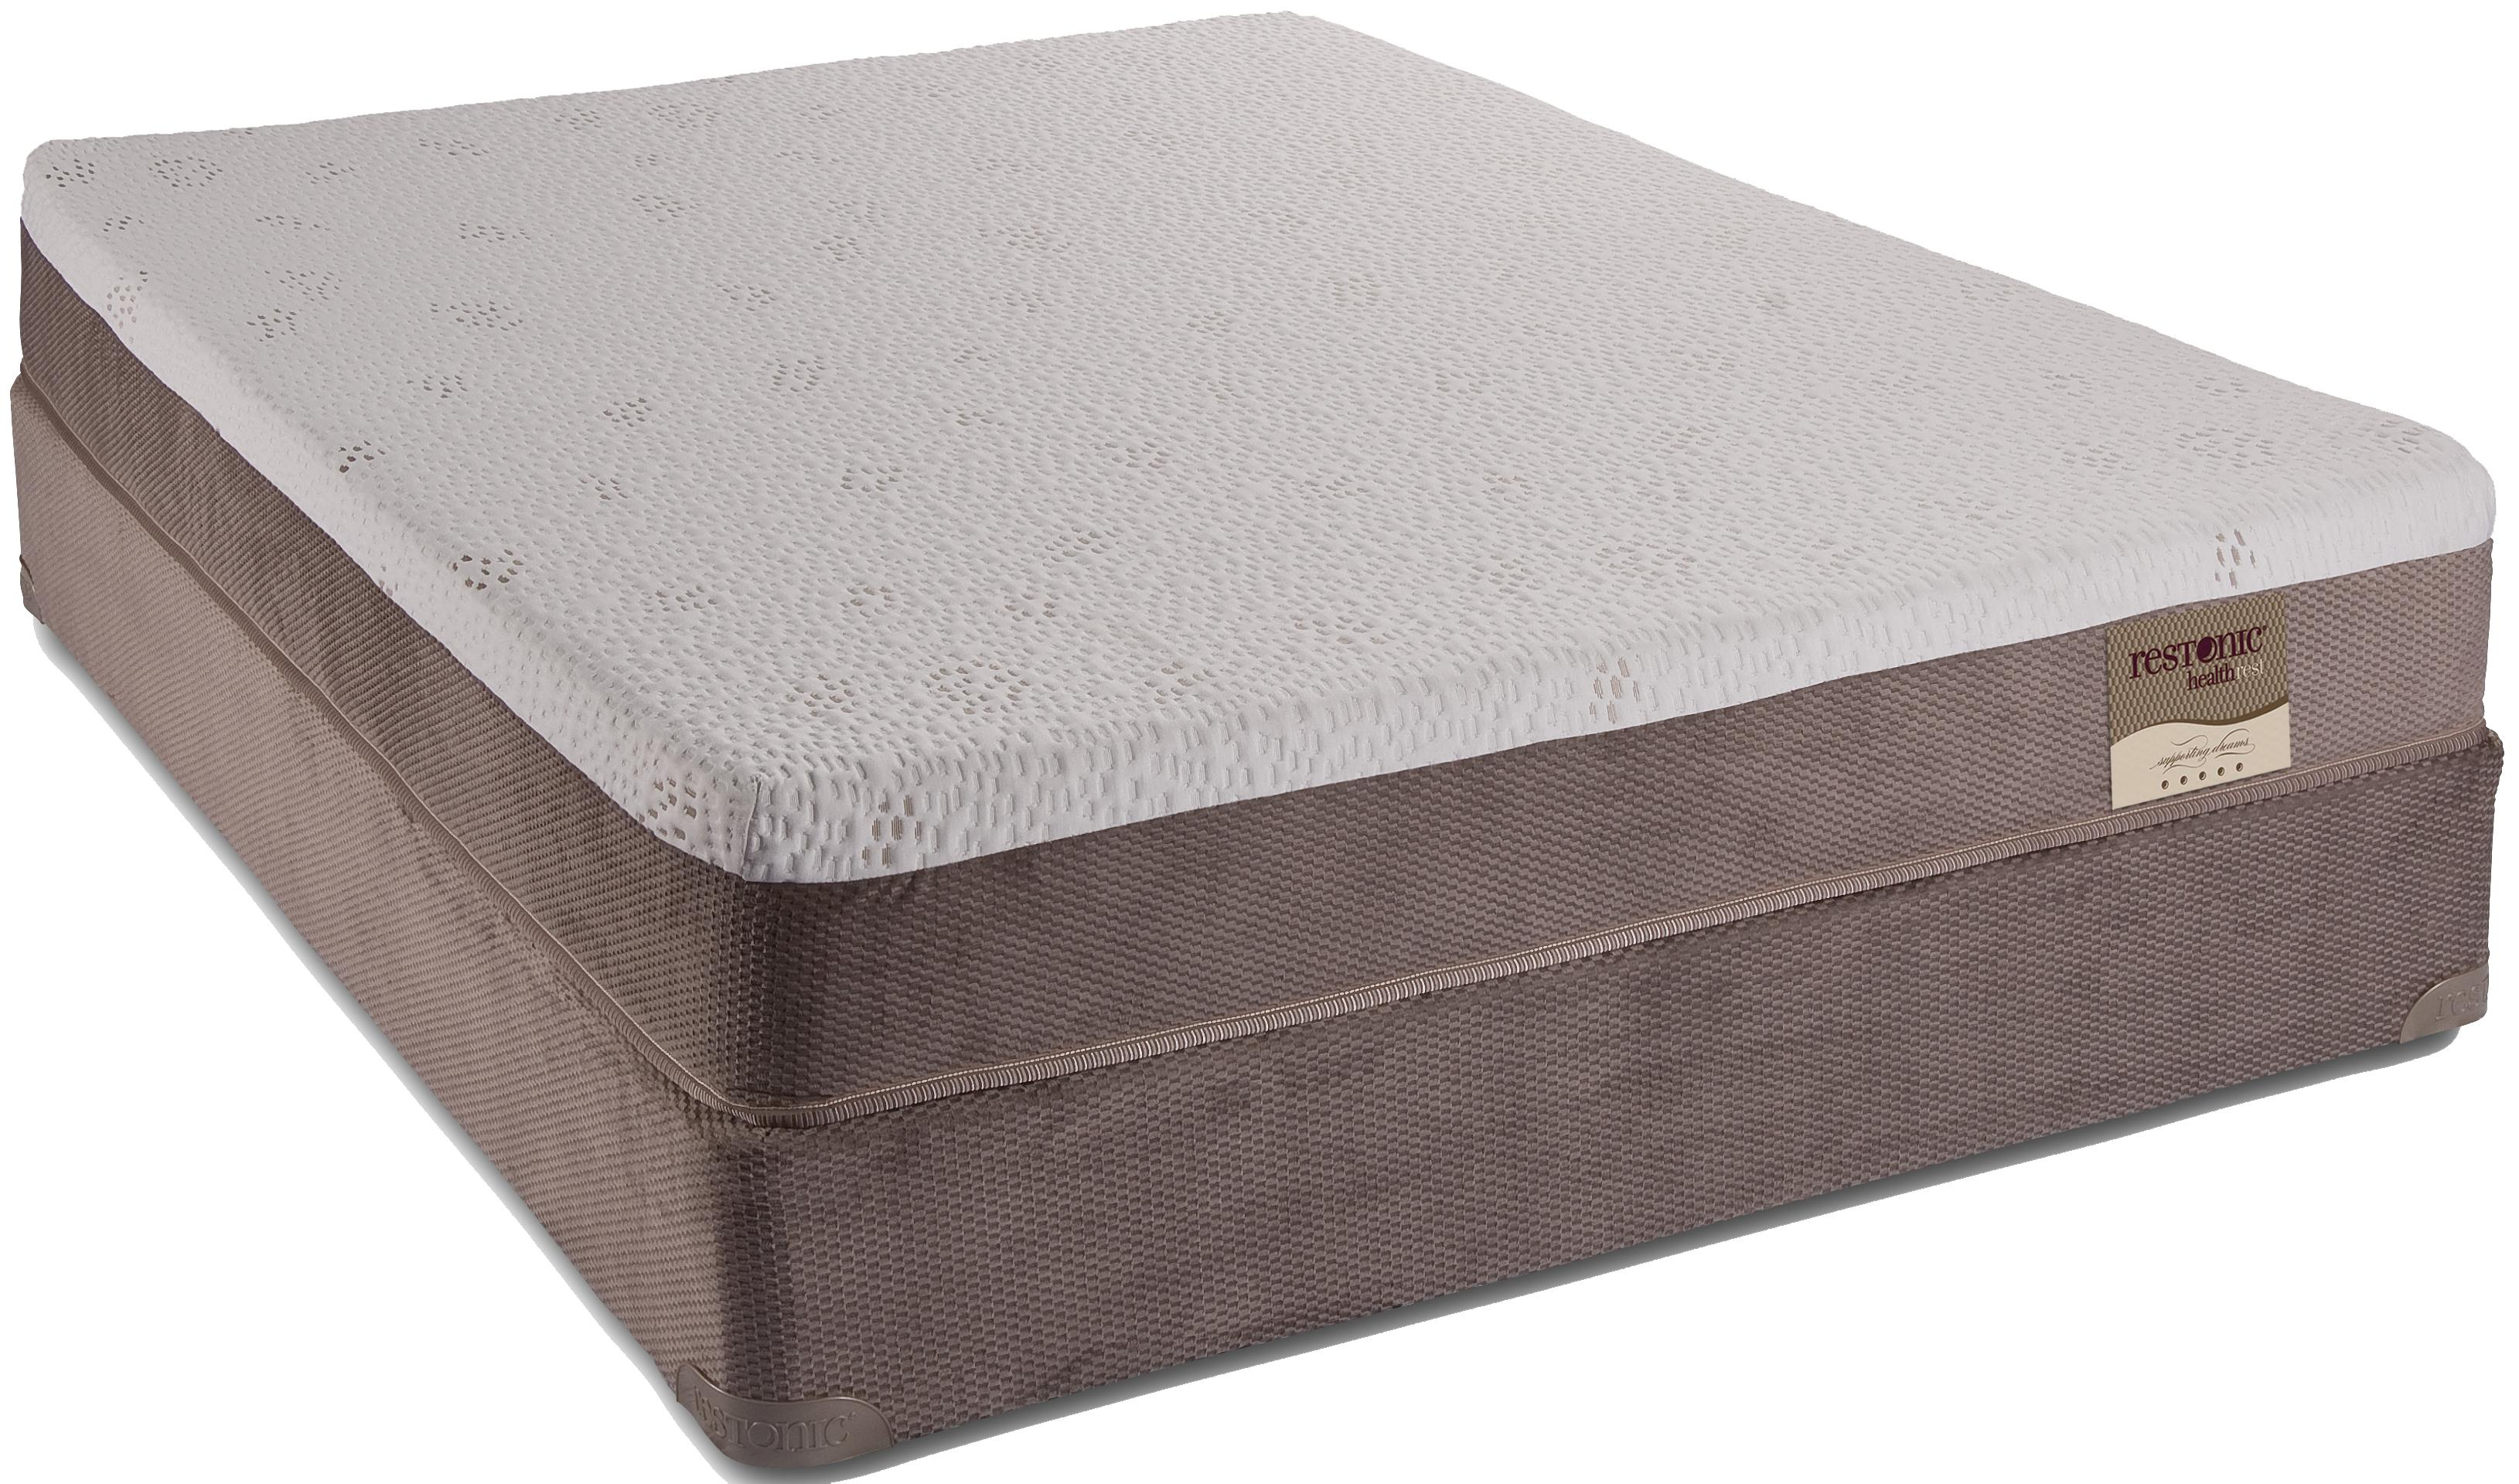 twin memory foam mattress by restonic wolf and gardiner wolf furniture. Black Bedroom Furniture Sets. Home Design Ideas